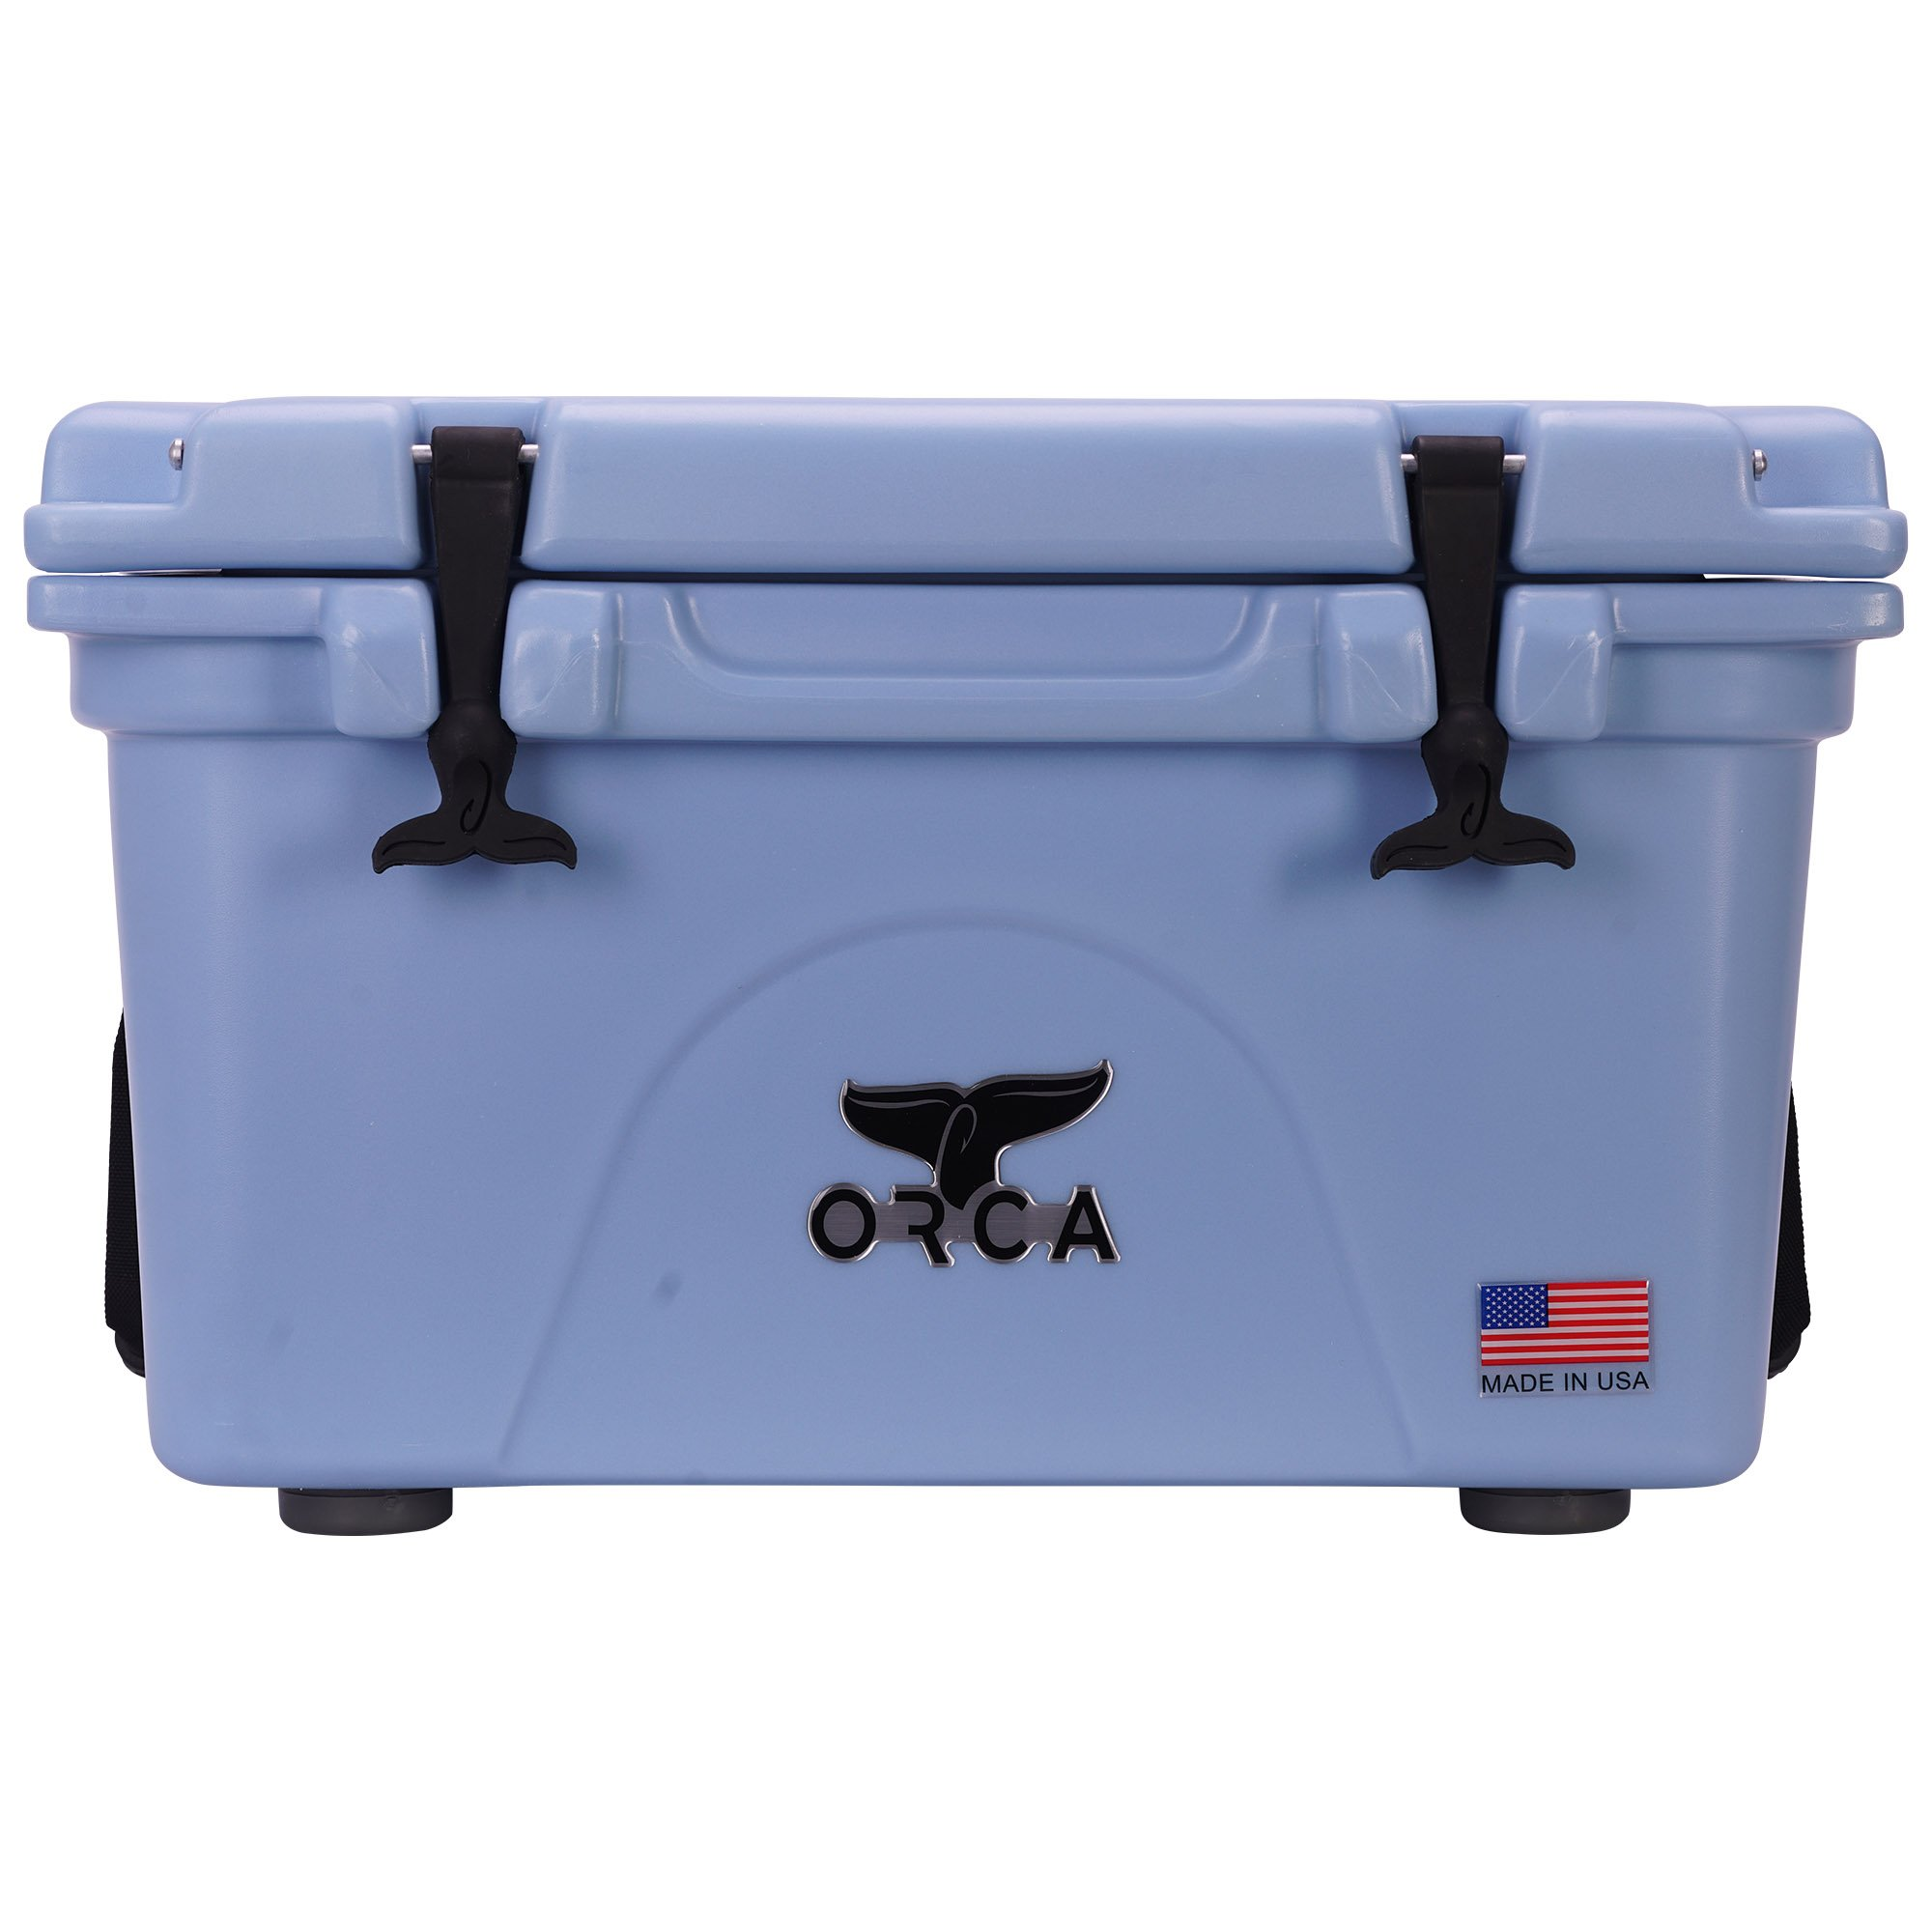 ORCA 26 Cooler, Light Blue